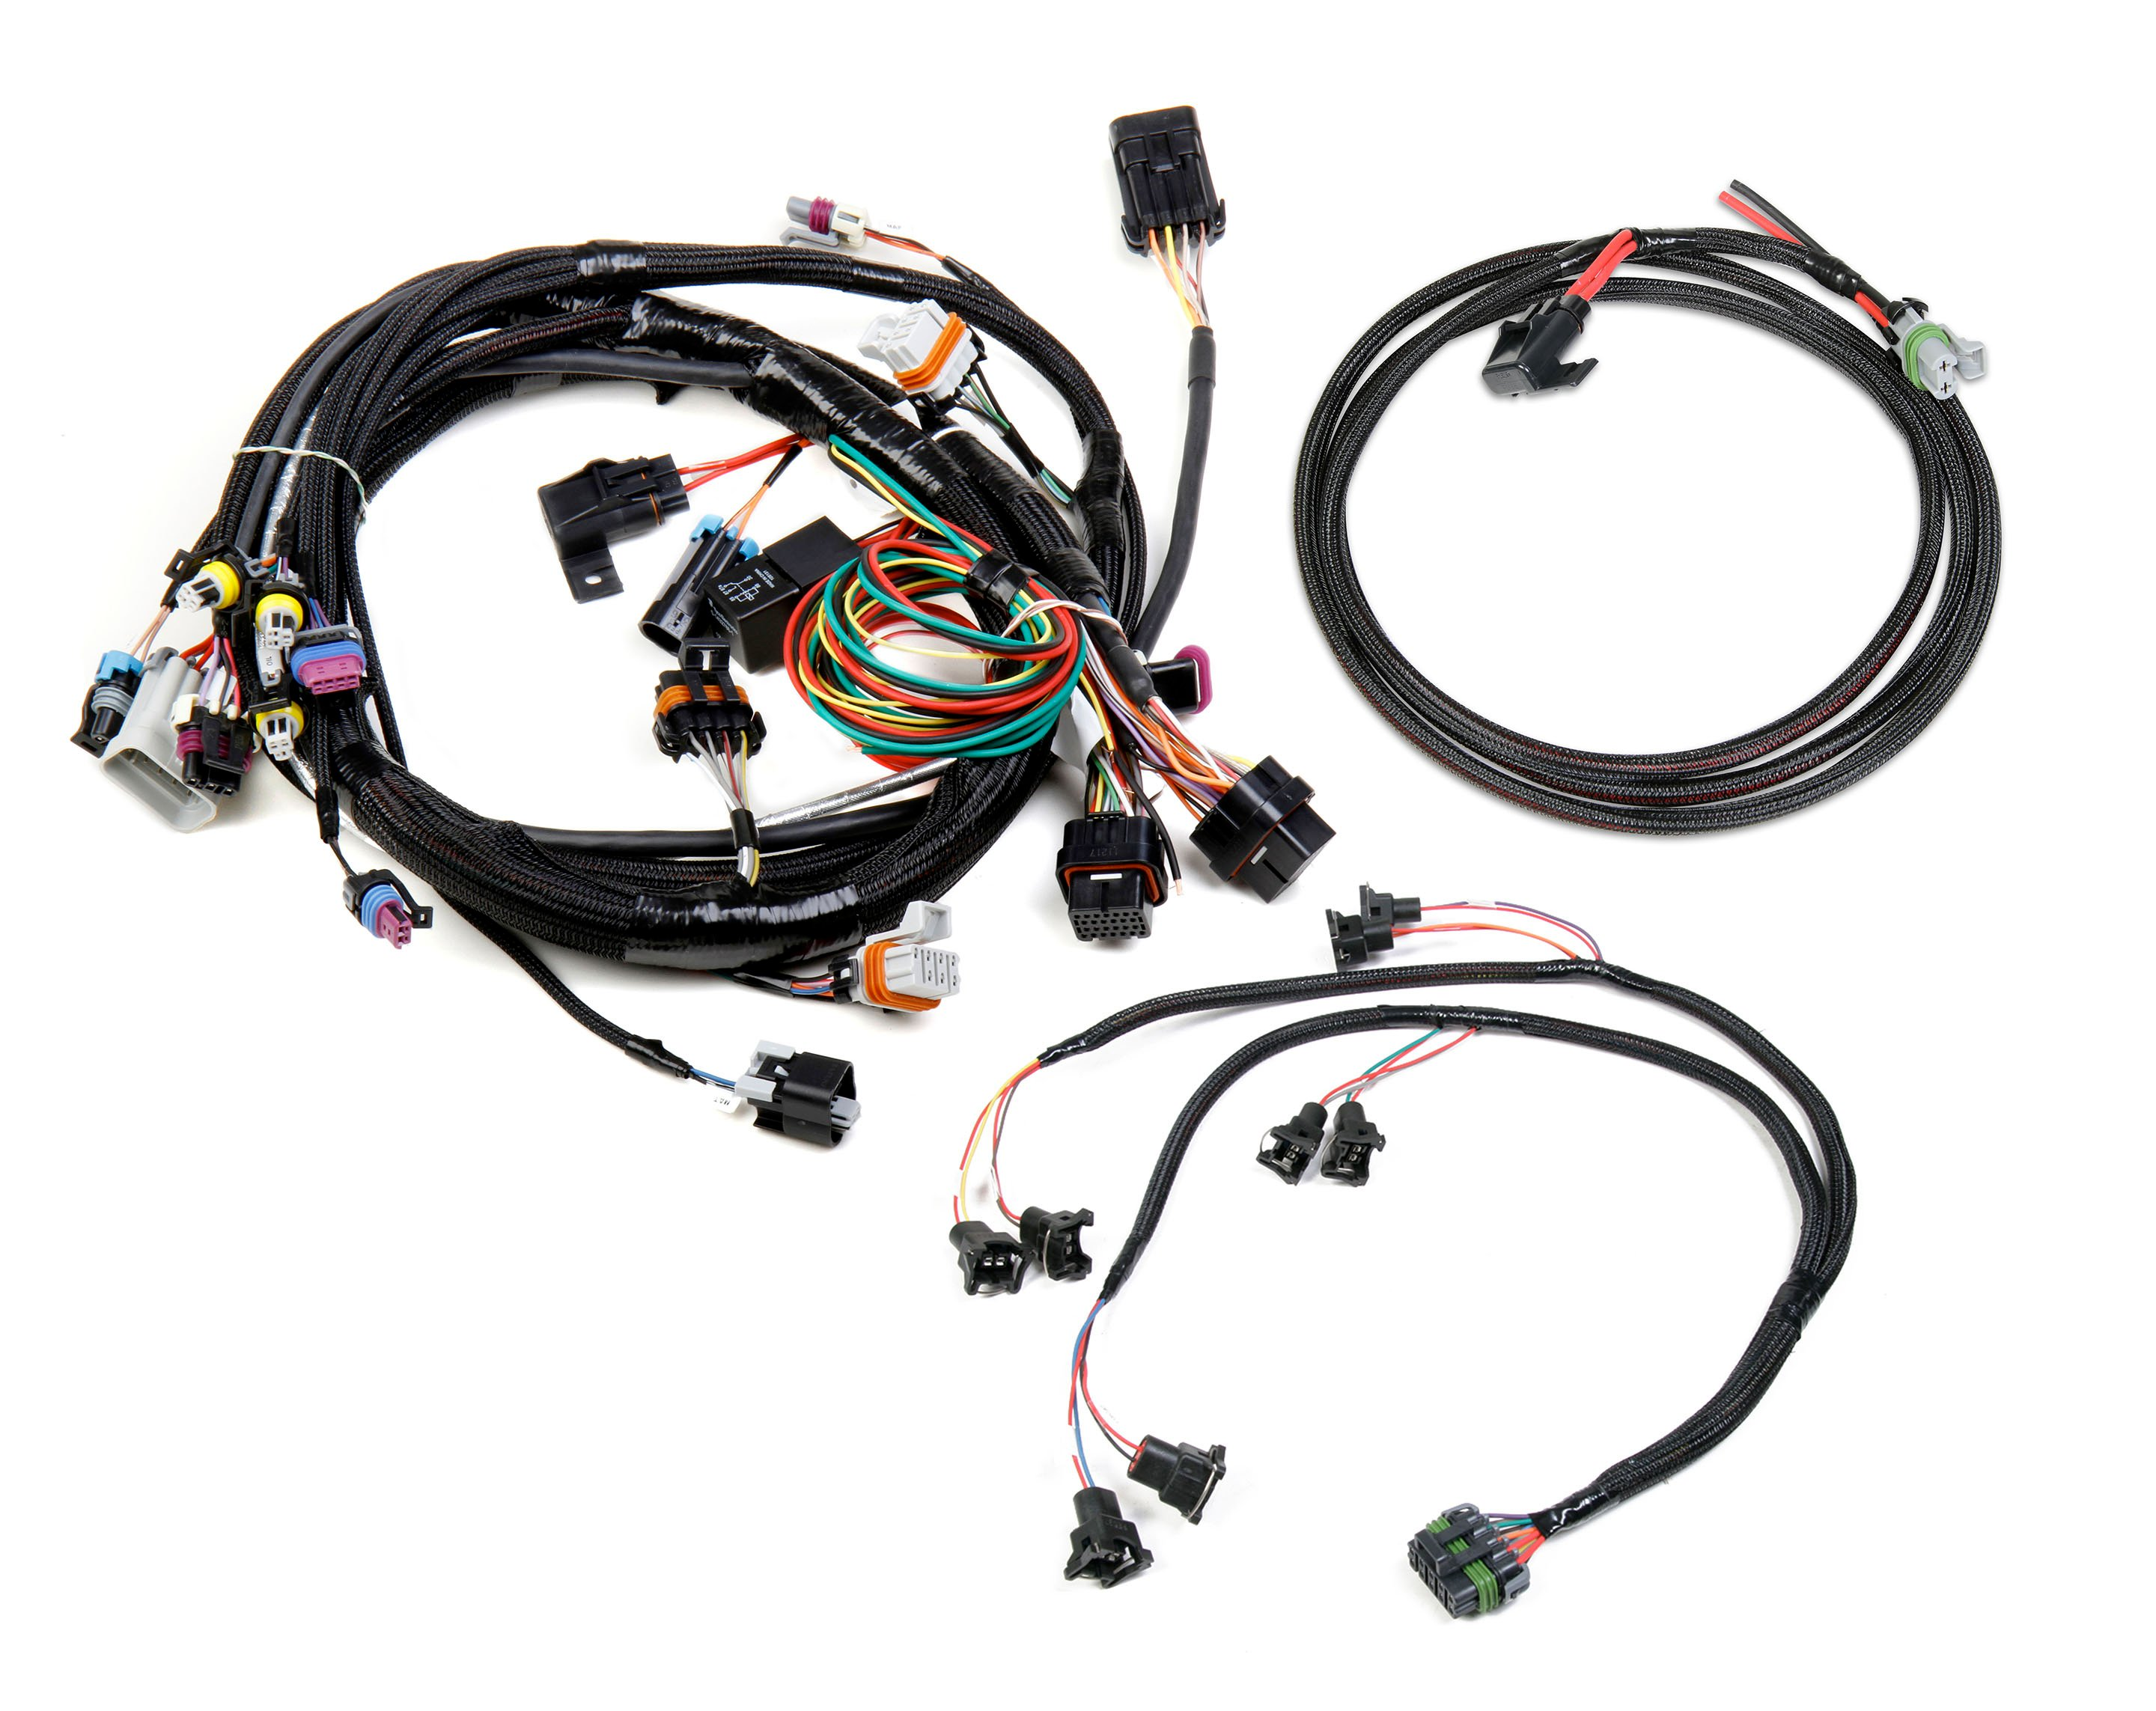 holley efi 558 500 gm ls 24x efi harness kit rh holley com Wiring Harness for Choppers Ford Wiring Harness